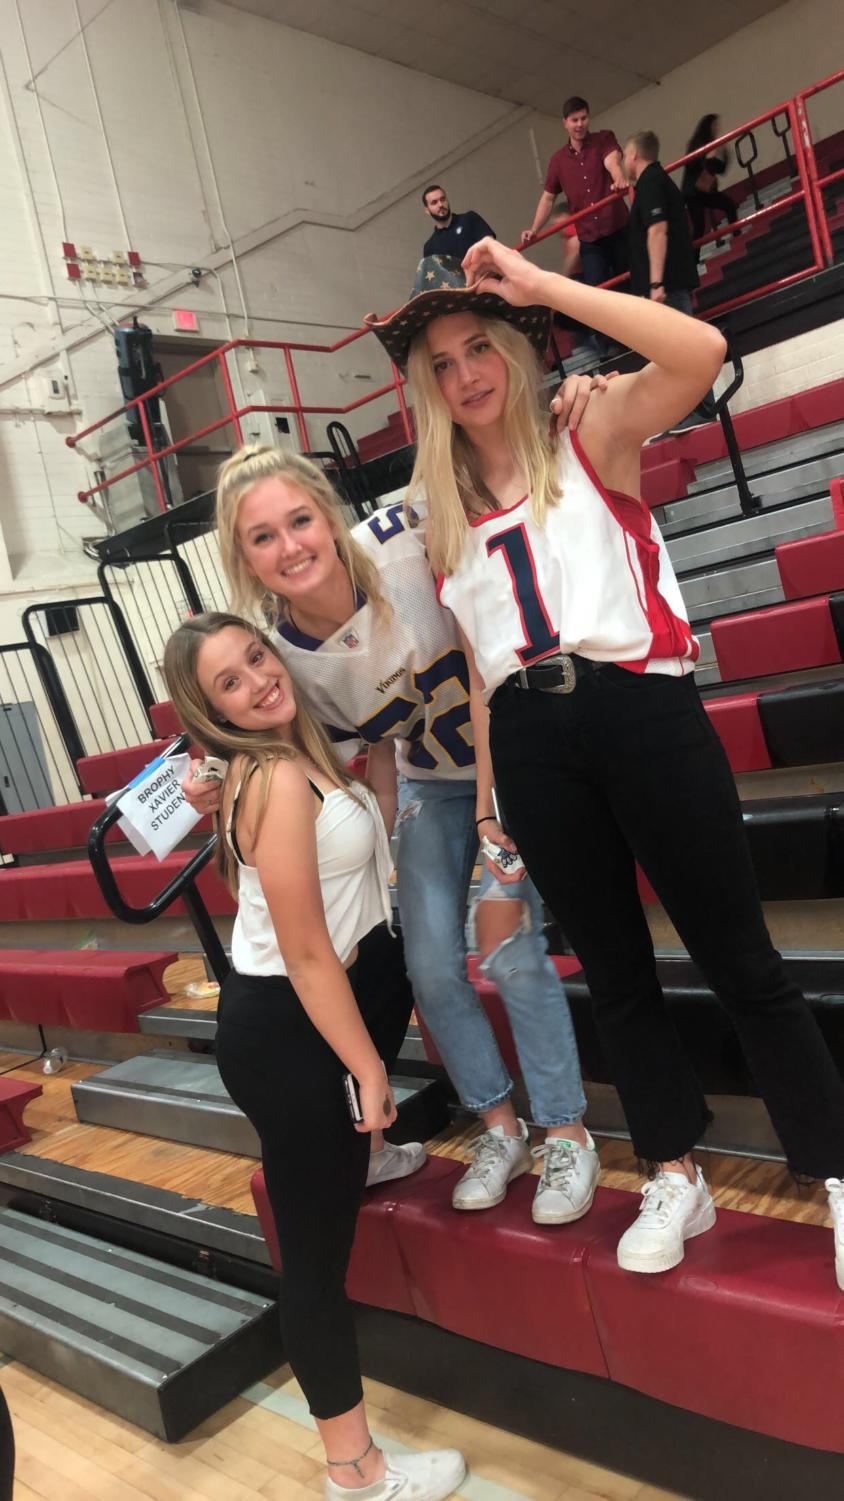 Junior Megan Onofrei, Senior Lindsay Hubbard, and Senior Sadie Wintergalen enjoyed the atmosphere of the Brophy Hoopcoming Basketball Game. Although the Broncos came up short in the game this year, Hoopcoming was a fun time for all.